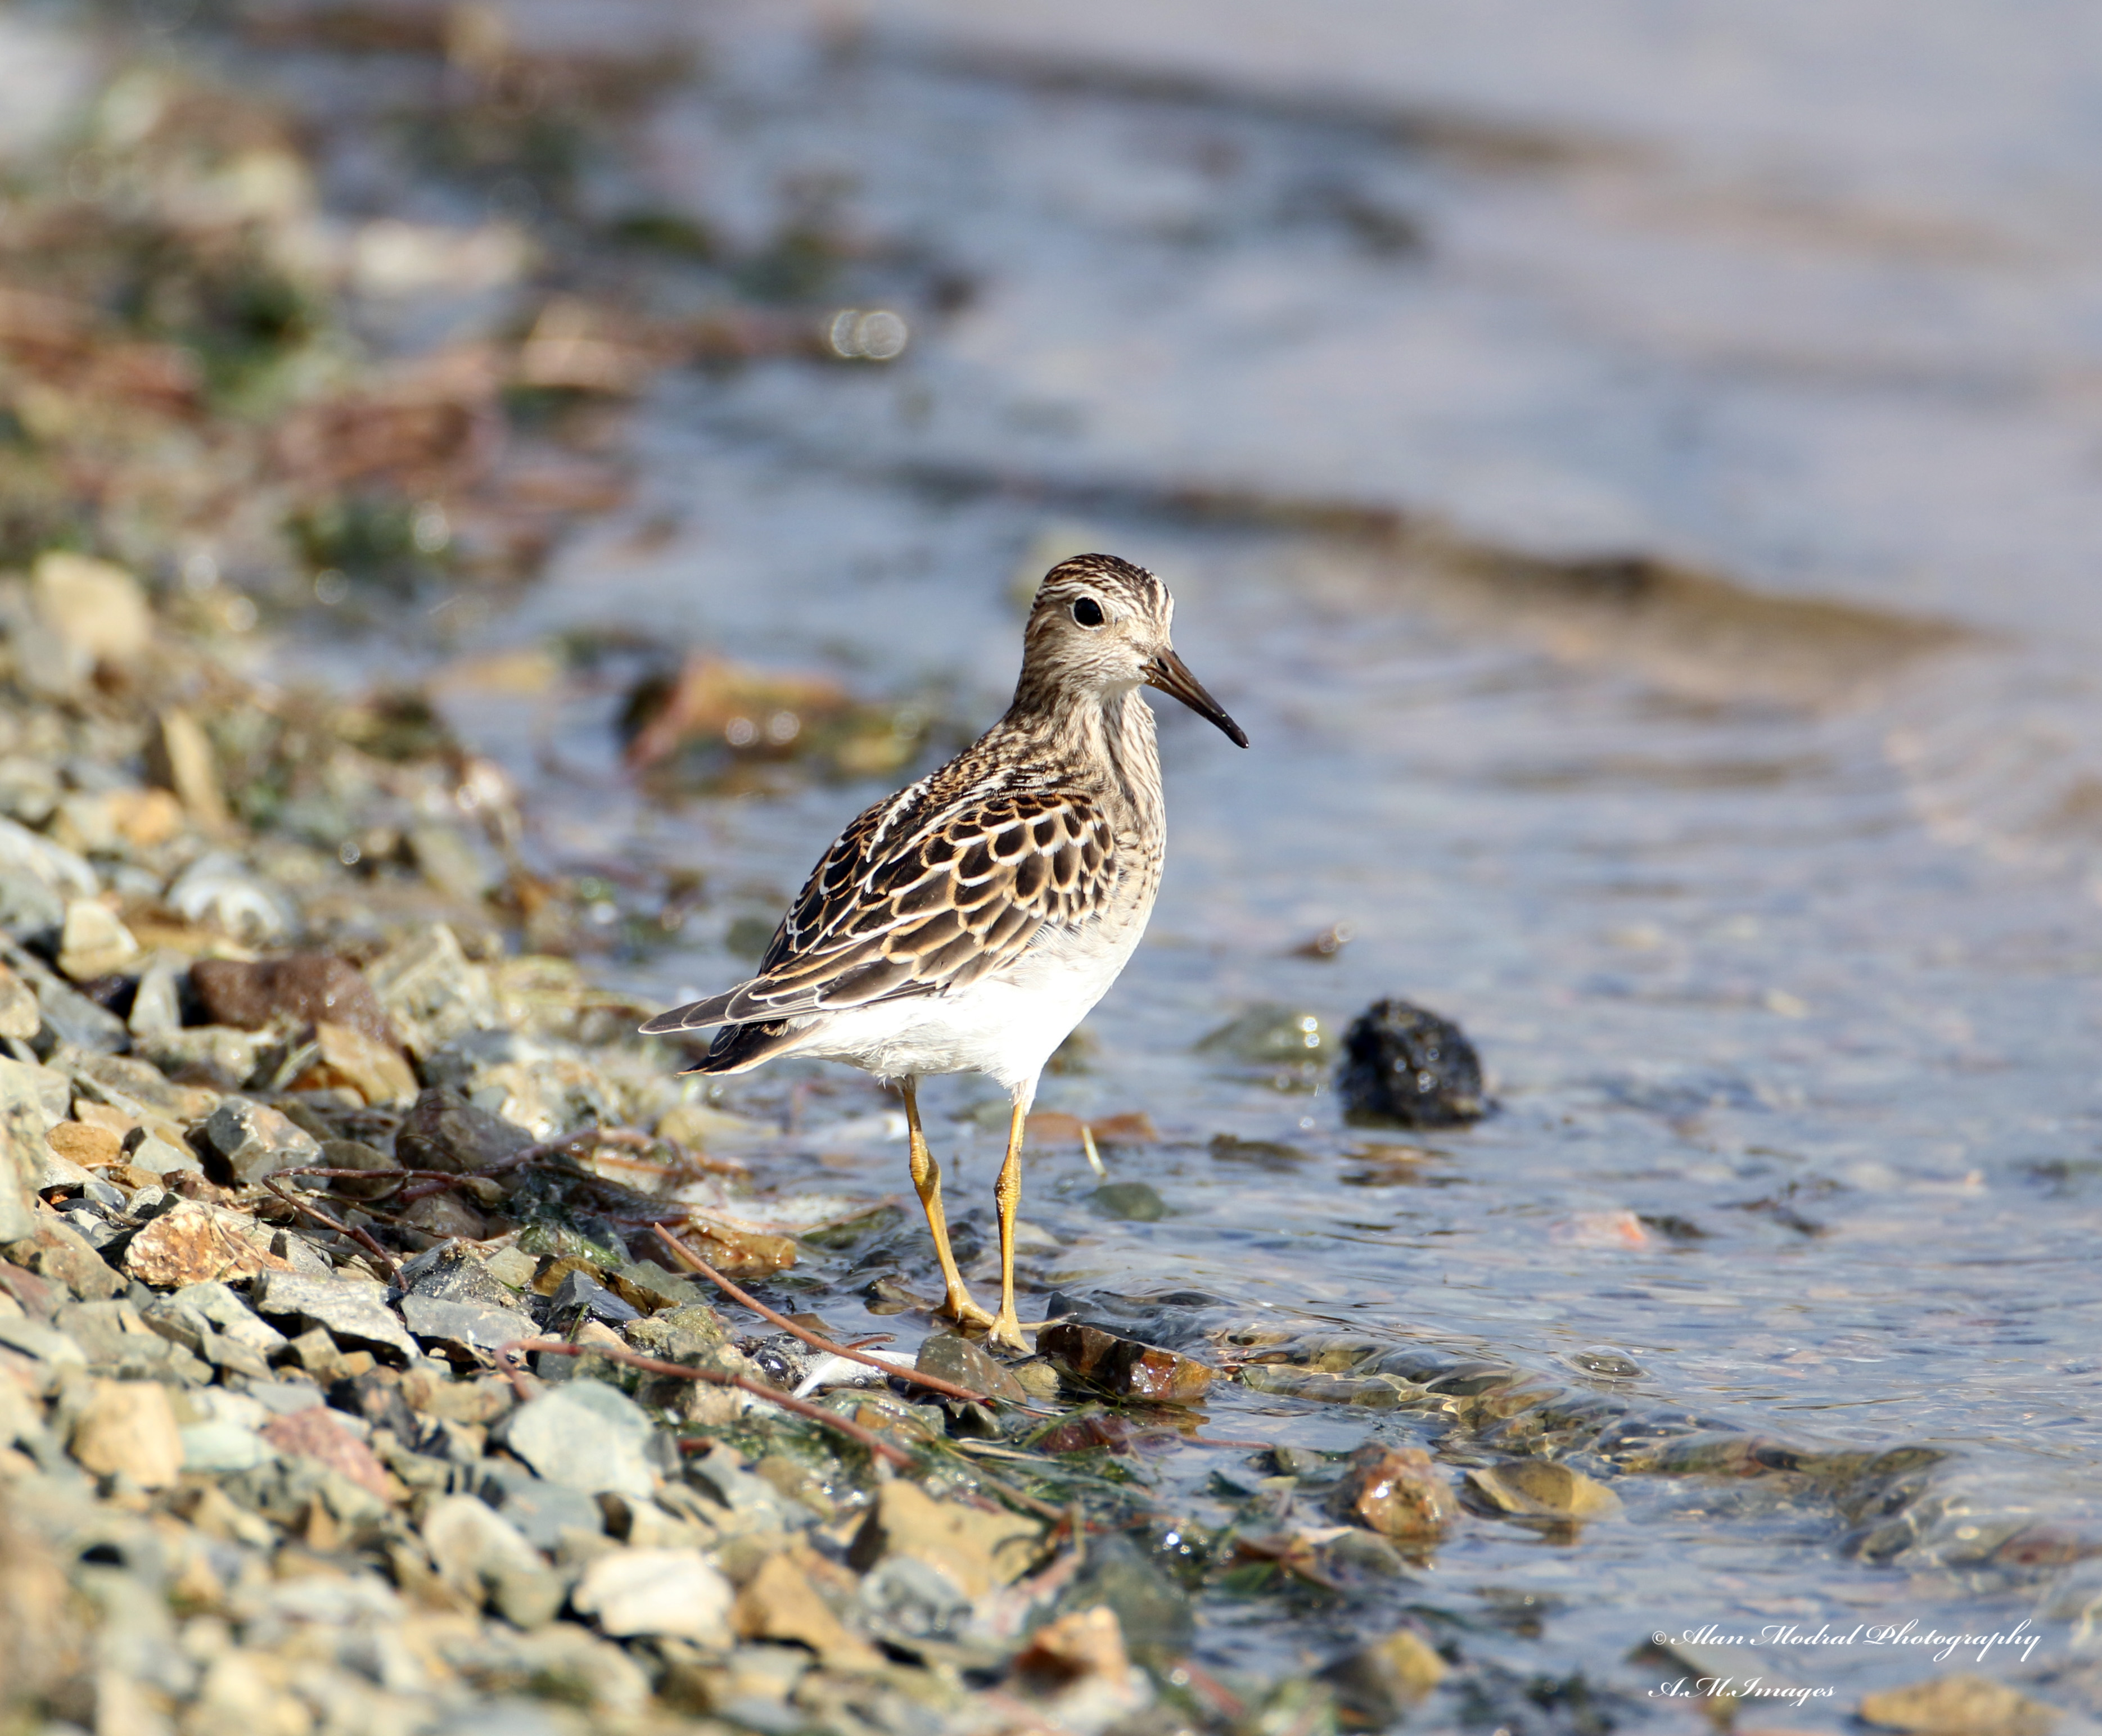 Pectoral Sandpiper by Alan Modral